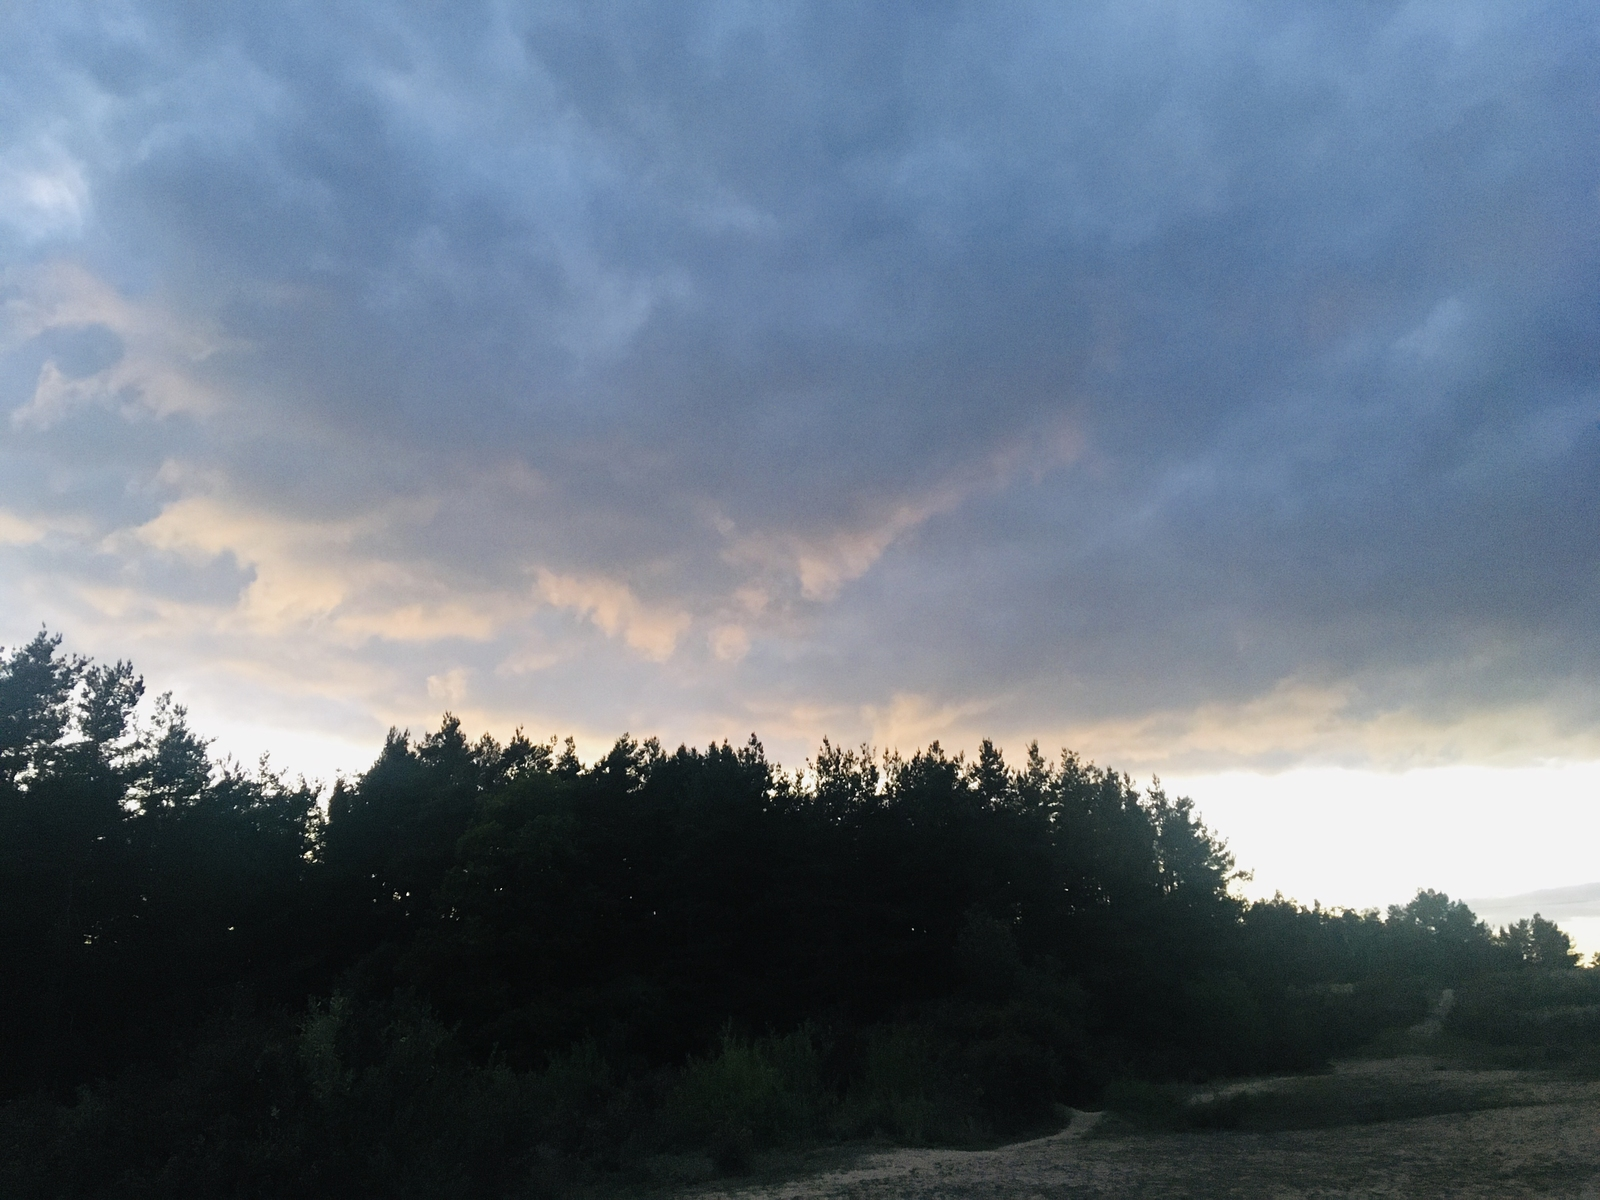 Angry looking clouds over the Hogmoor Inclosure, in Whitehill, Hampshire.